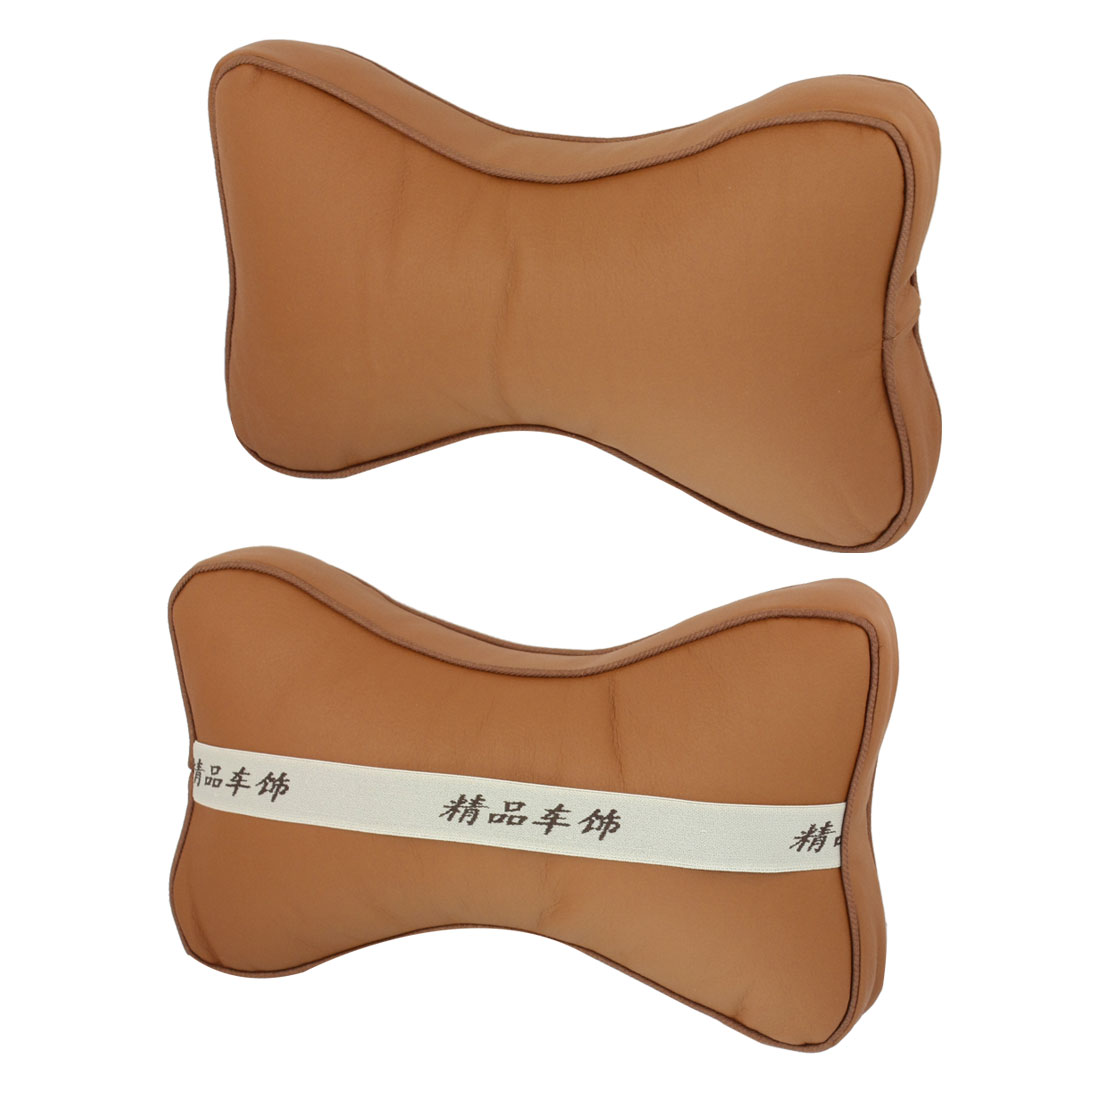 Unique Bargains Car Auto Bone Shaped Zipper Closure Neck Head Rest Cushion Pillows Brown Pair